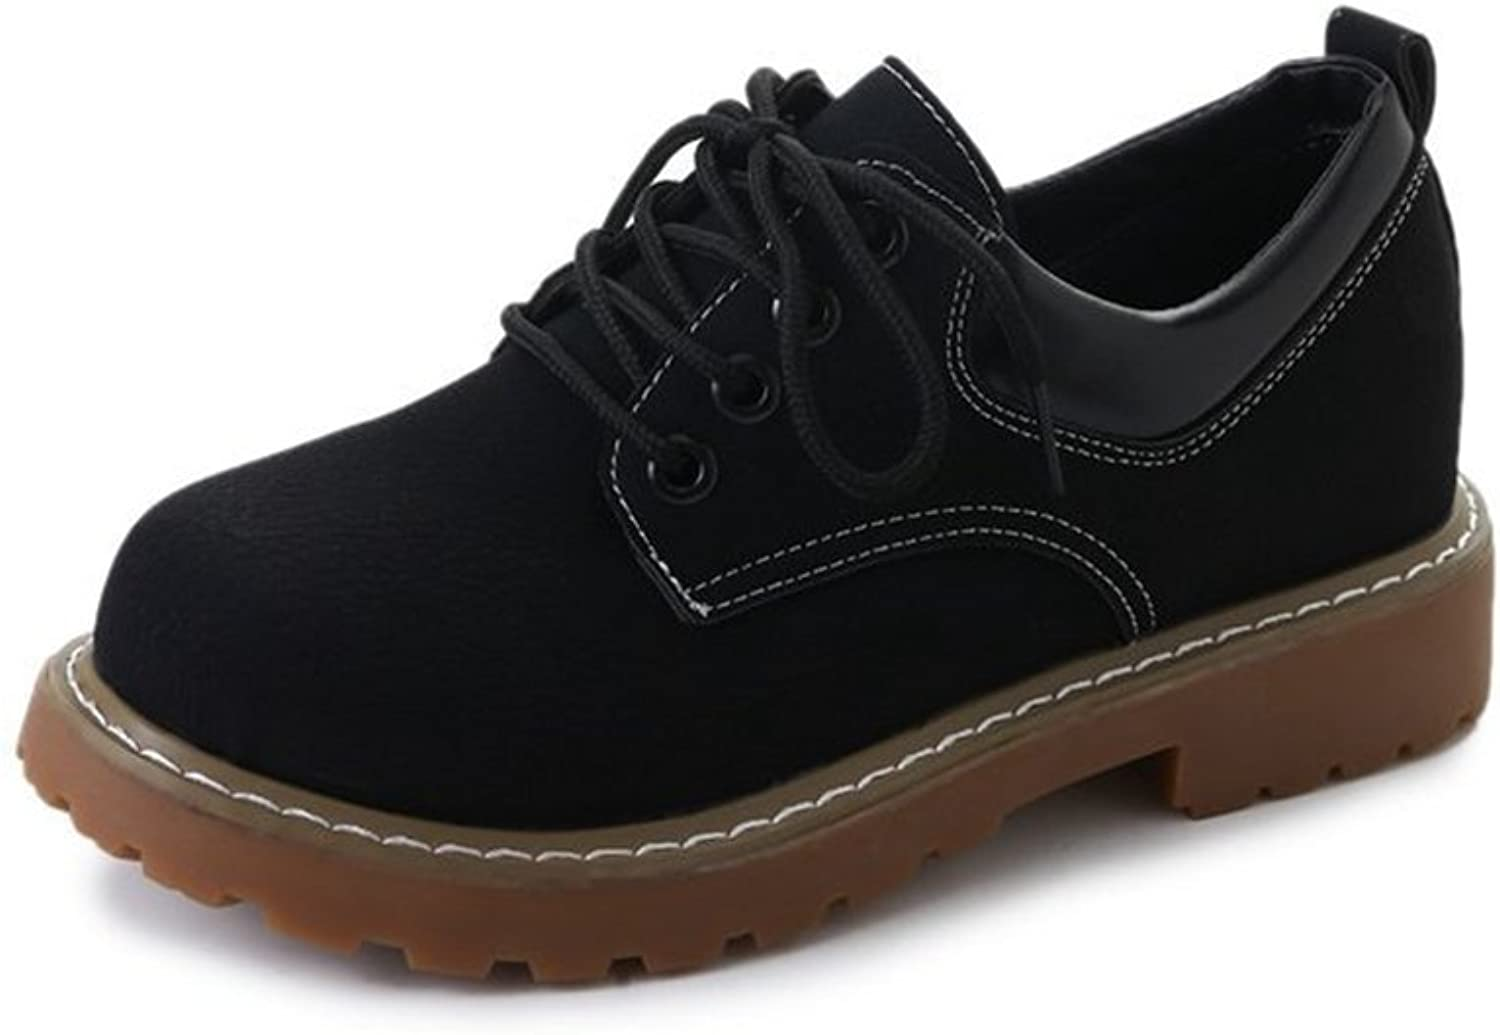 T-JULY Women's Fashion Oxfords shoes - Comfy Performance Lace-up Low Heel Casual shoes